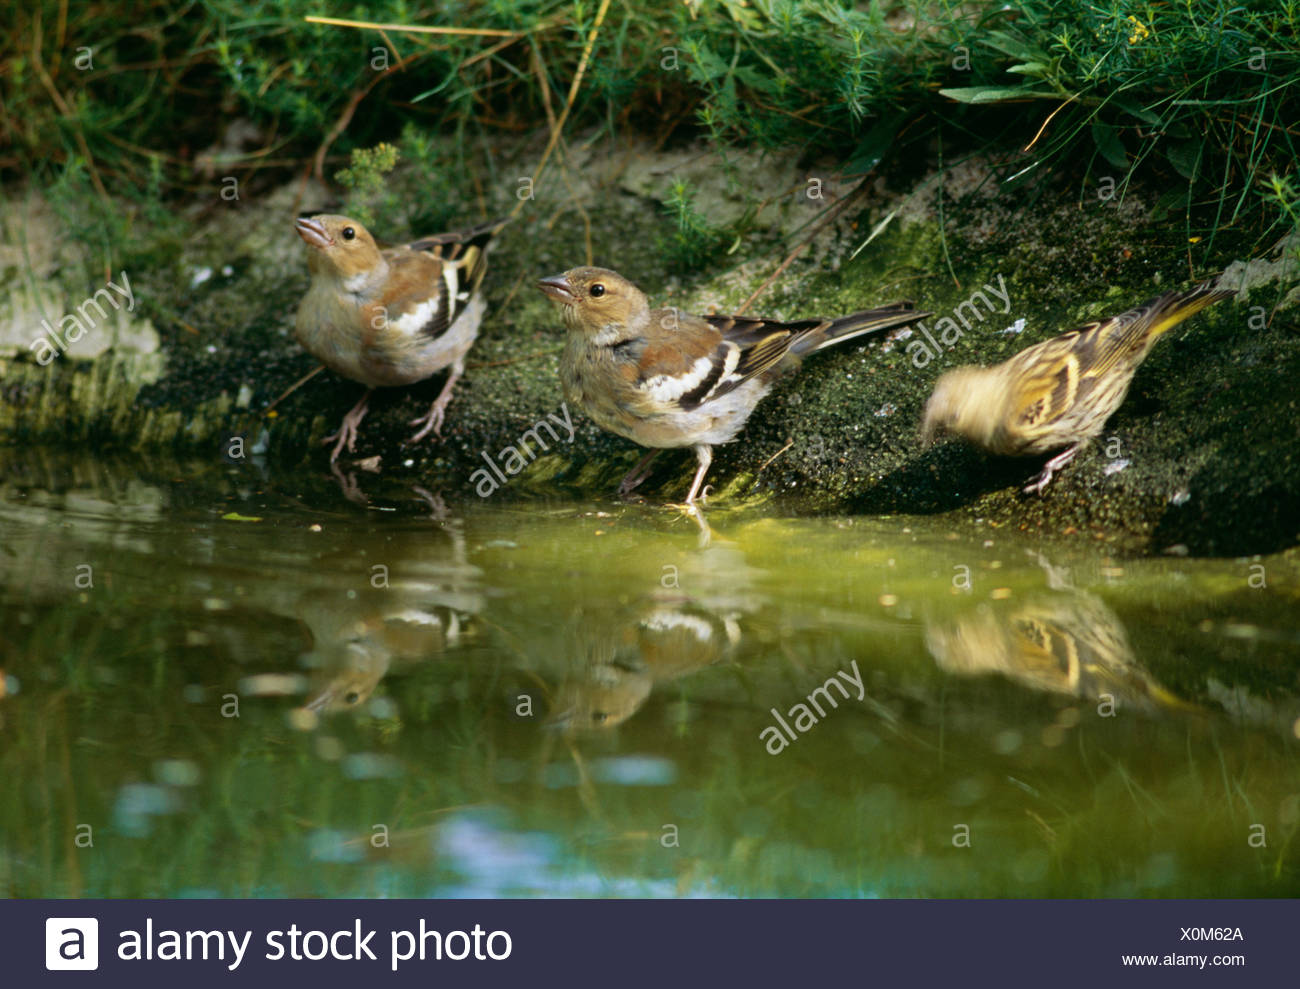 Siskin and chaffinch, Sweden. - Stock Image